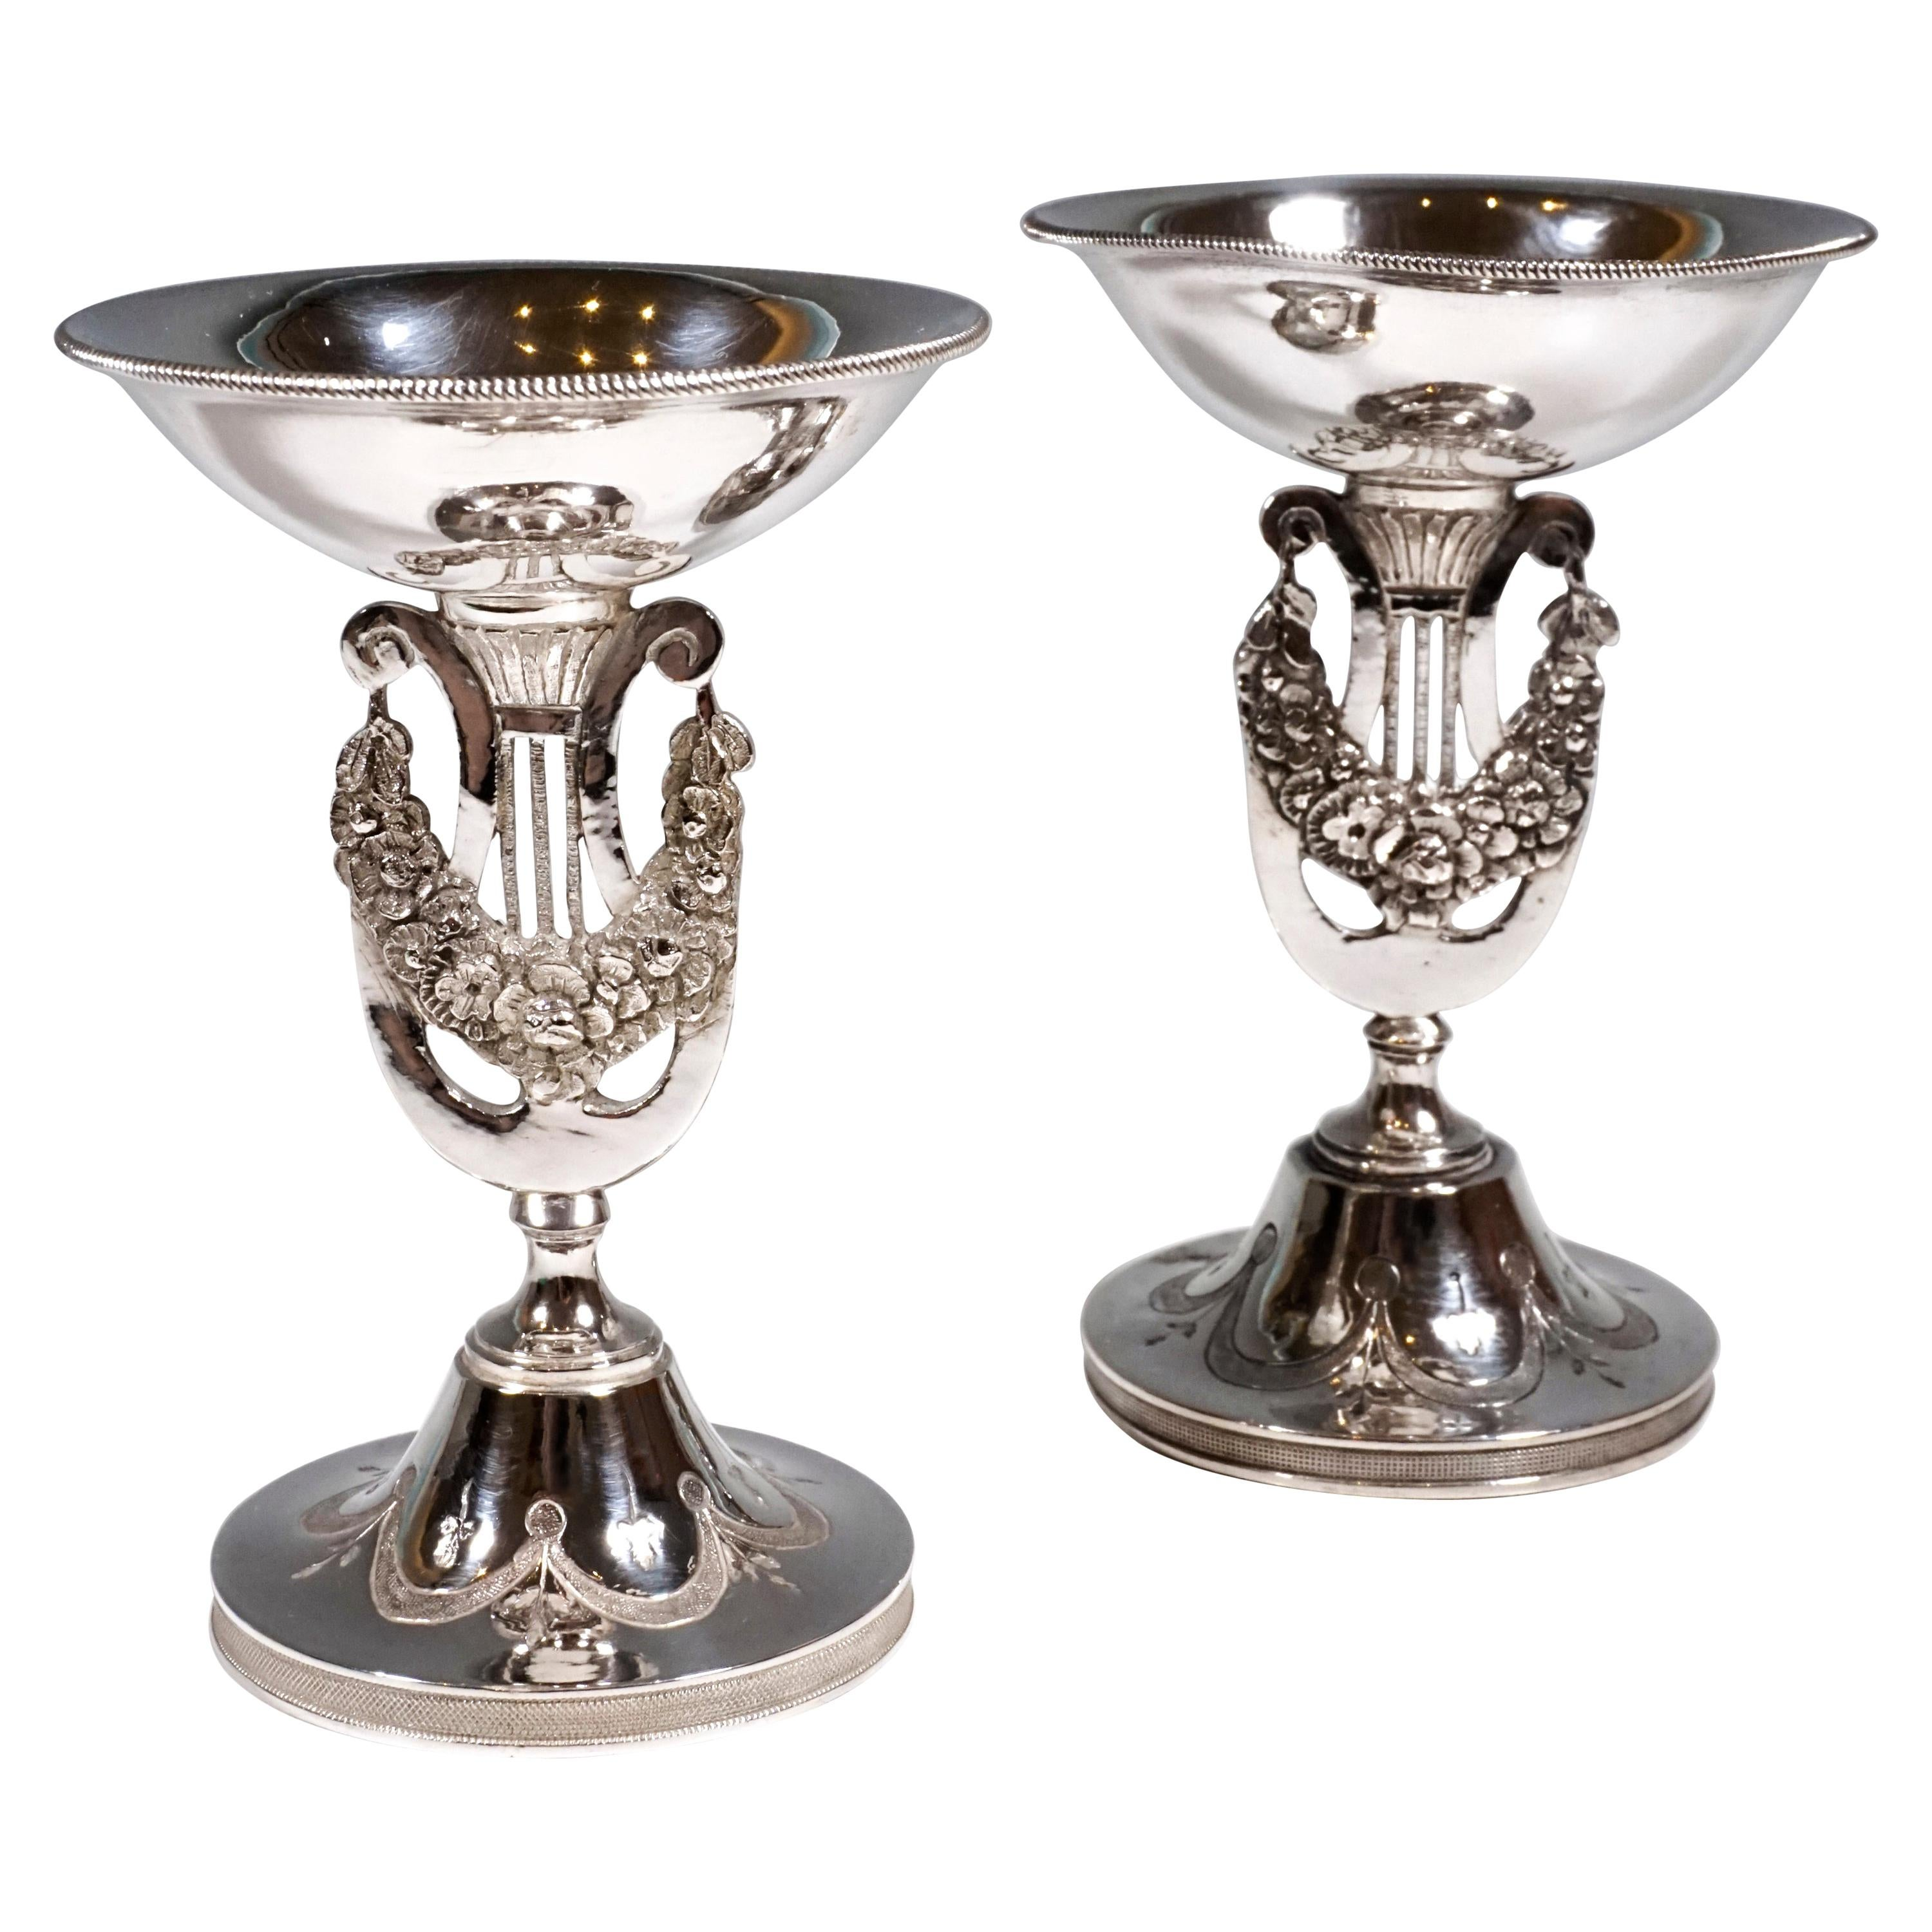 Pair Of Antique Vienna Silver Empire Spice Bowls by Georg Kohlmayer, ca. 1815